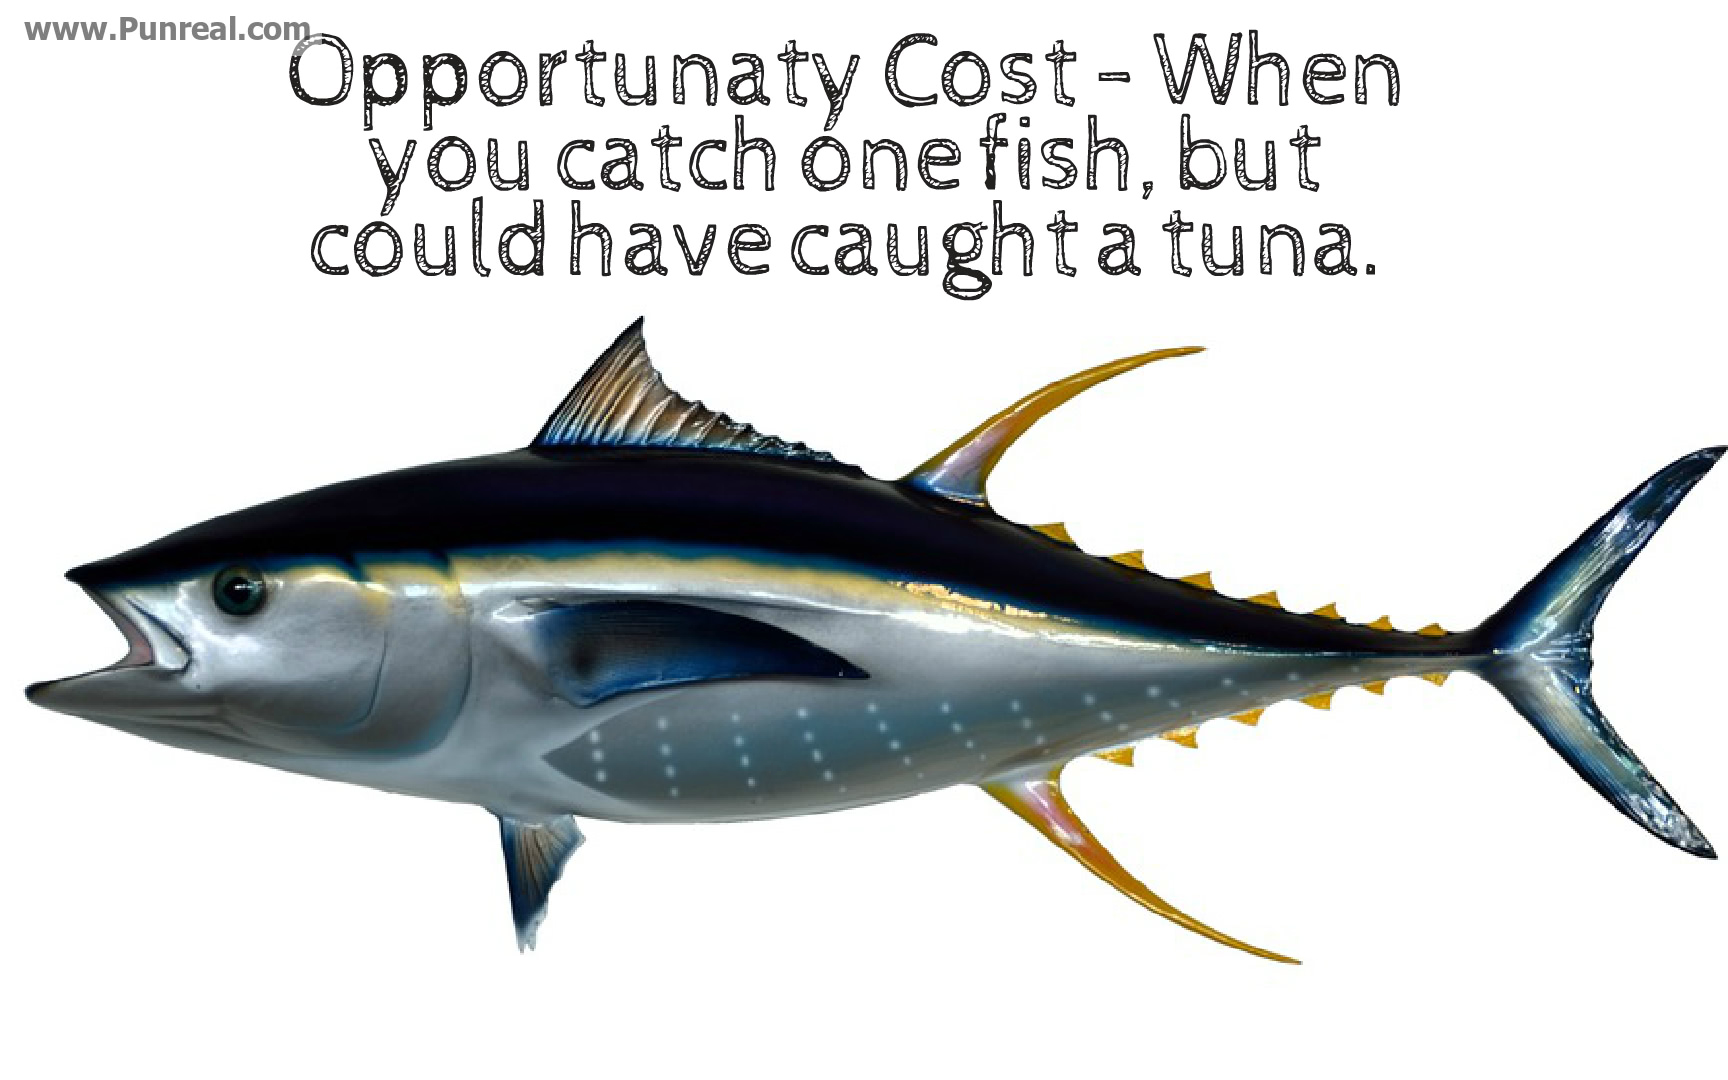 Opportunaty cost is when you catch one fish but could have caught a tuna.